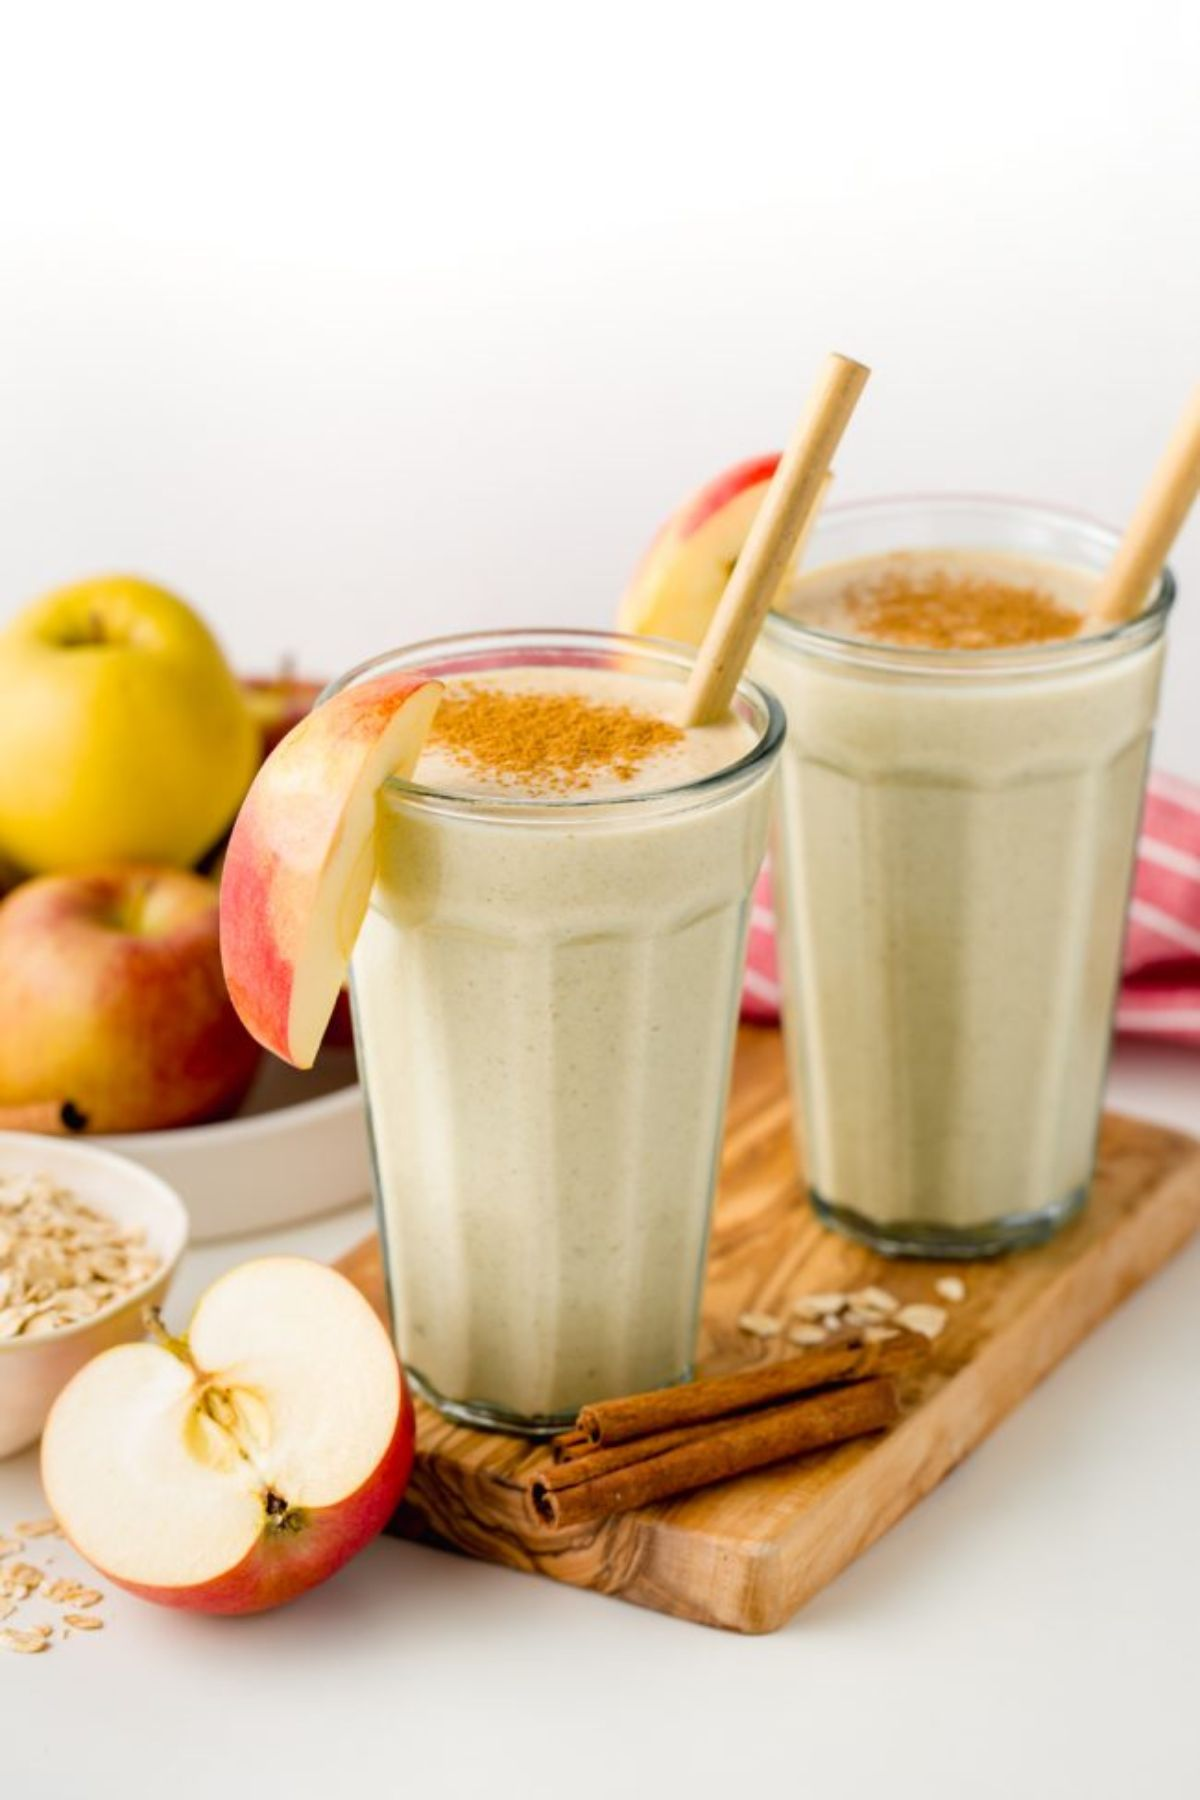 2 glasses of apple pie smoothie on a wooden board, garnished by apple slices, topped with cinnamon and surrounded by cinnamon sticks, apples and oats